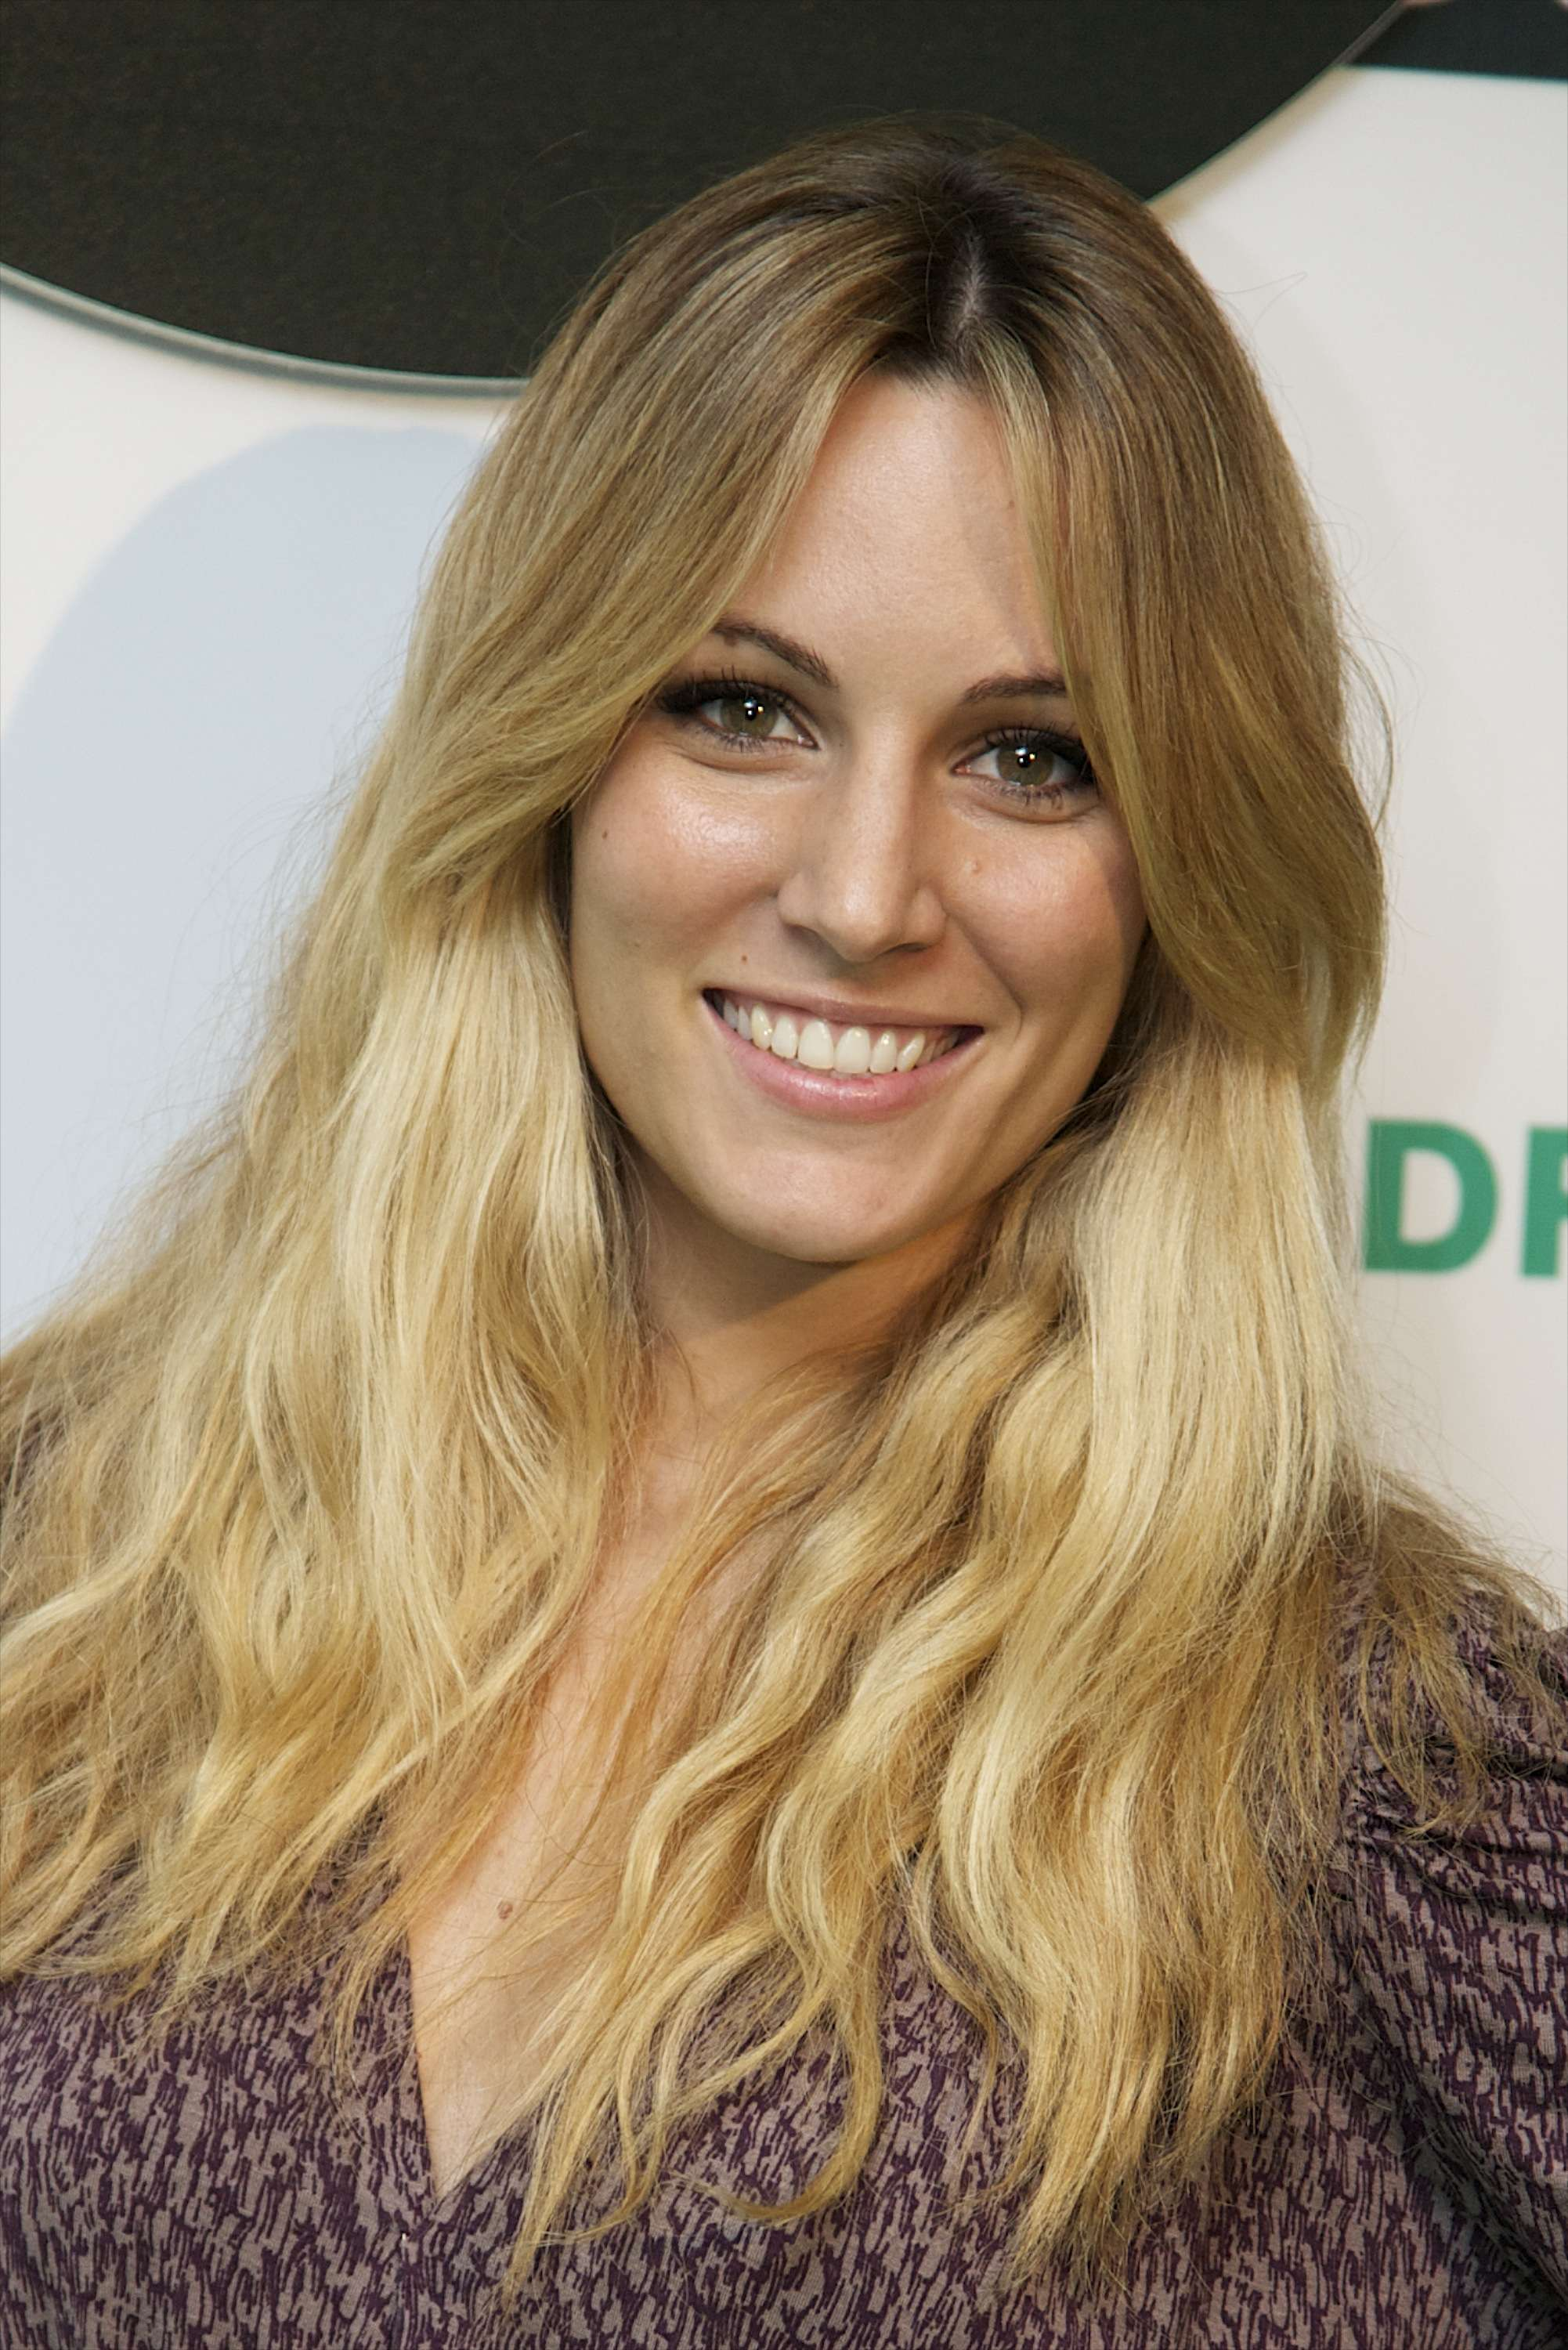 Edurne Foto: Getty Images